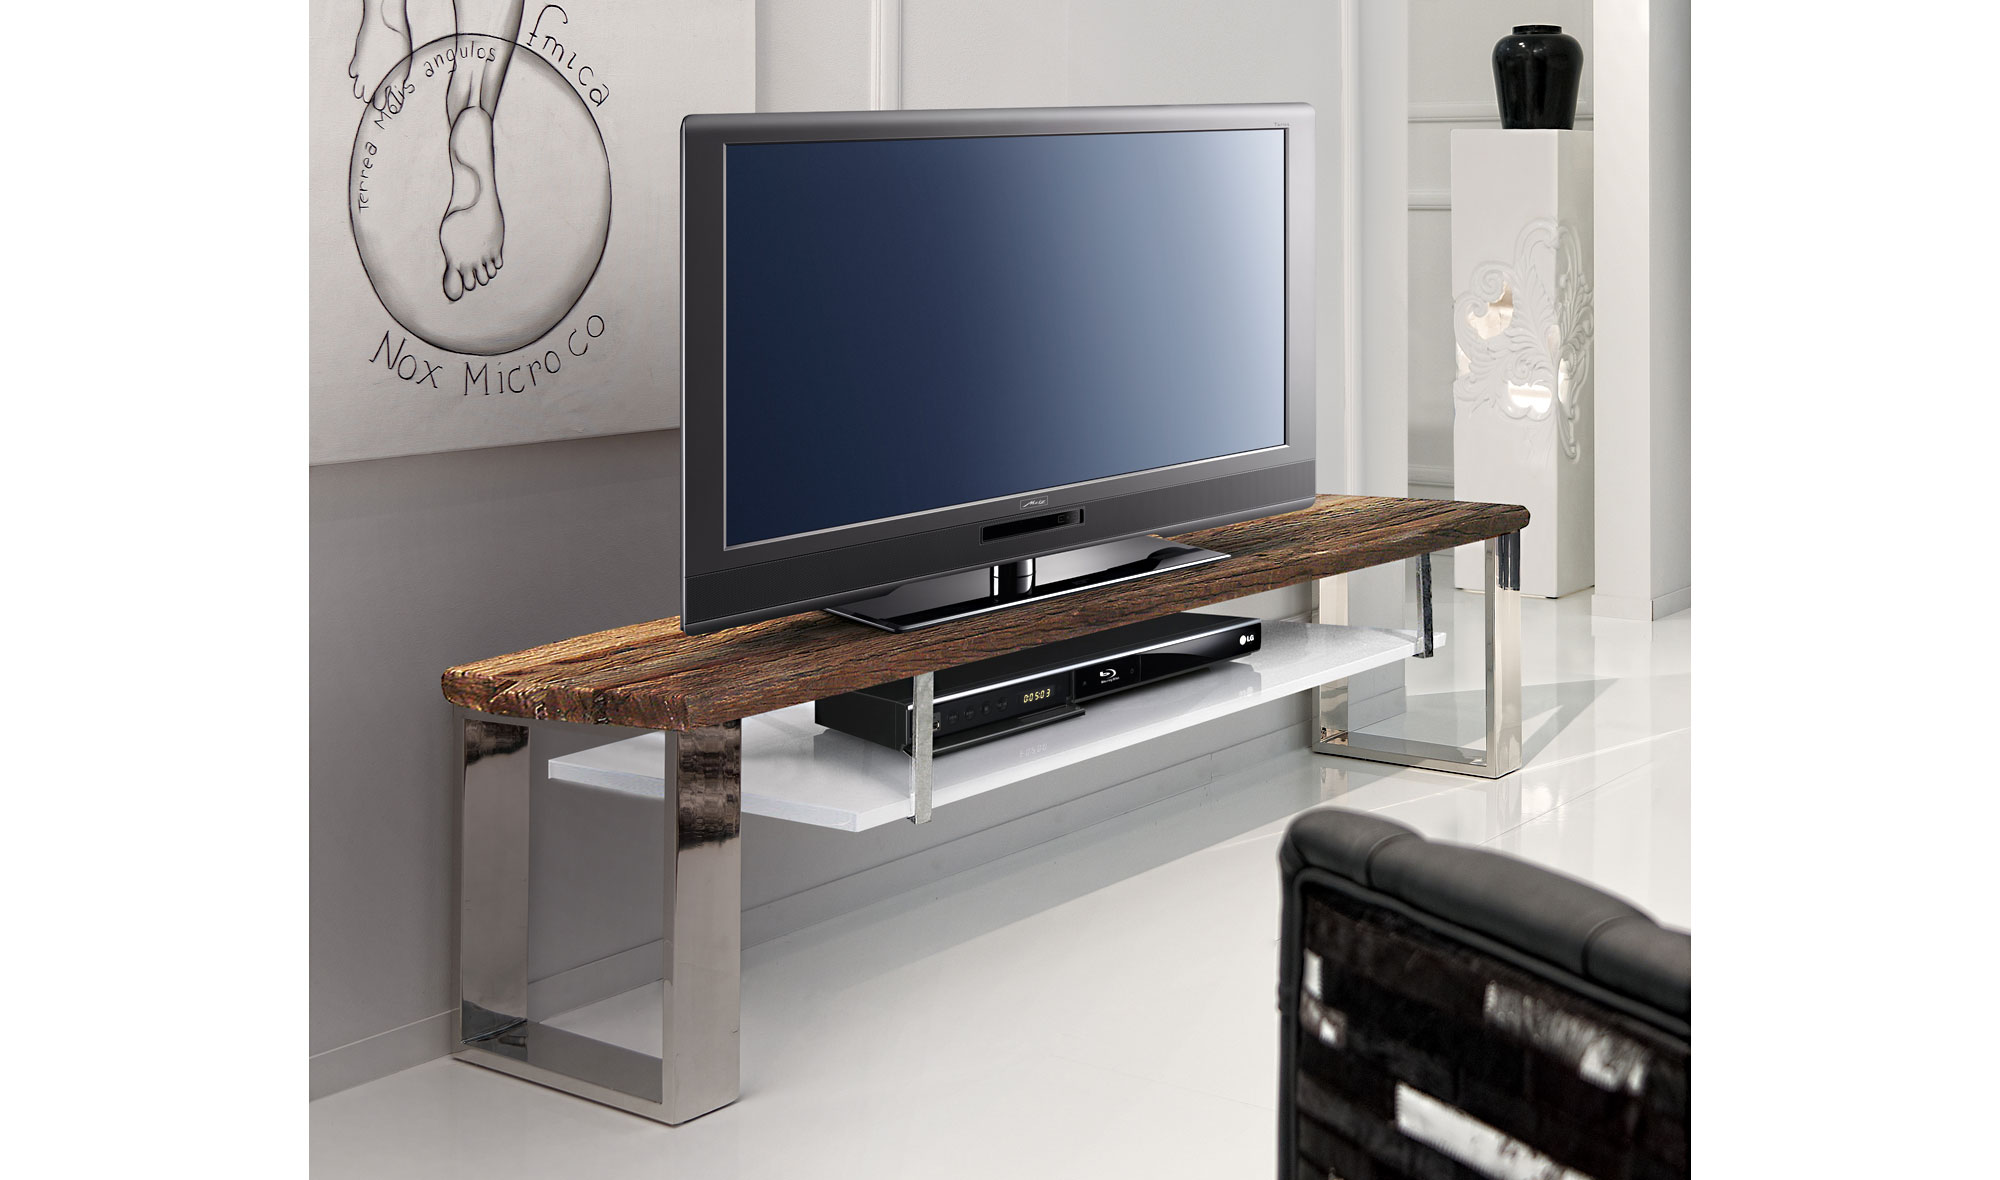 Mueble tv con estante moderno seducti en - Sofas arabes baratos ...